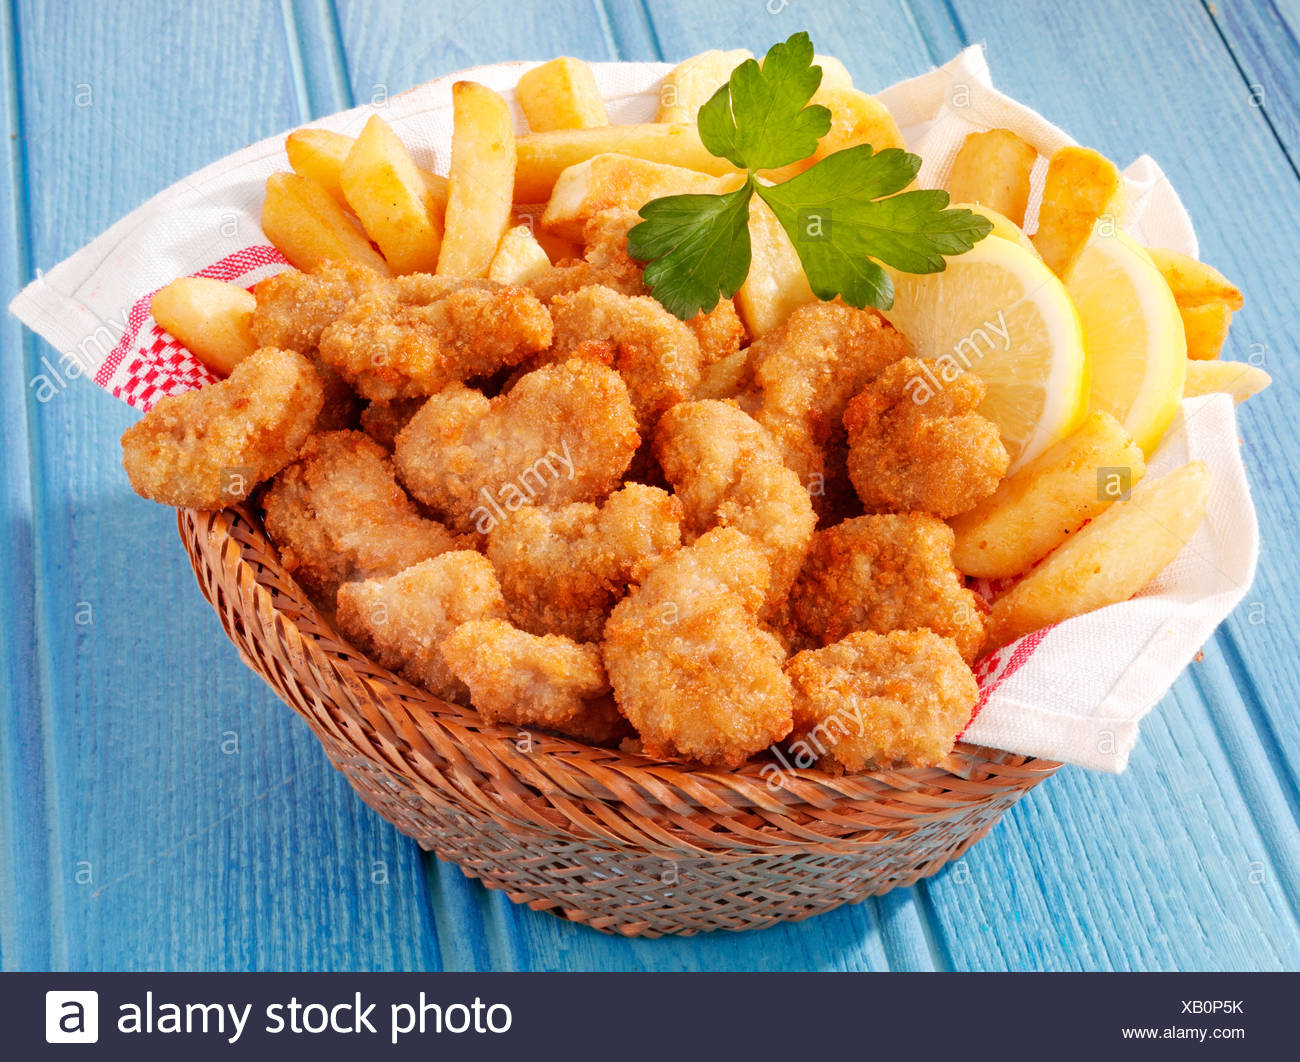 BASKET OF SCAMPI AND CHIPS Stock Photo